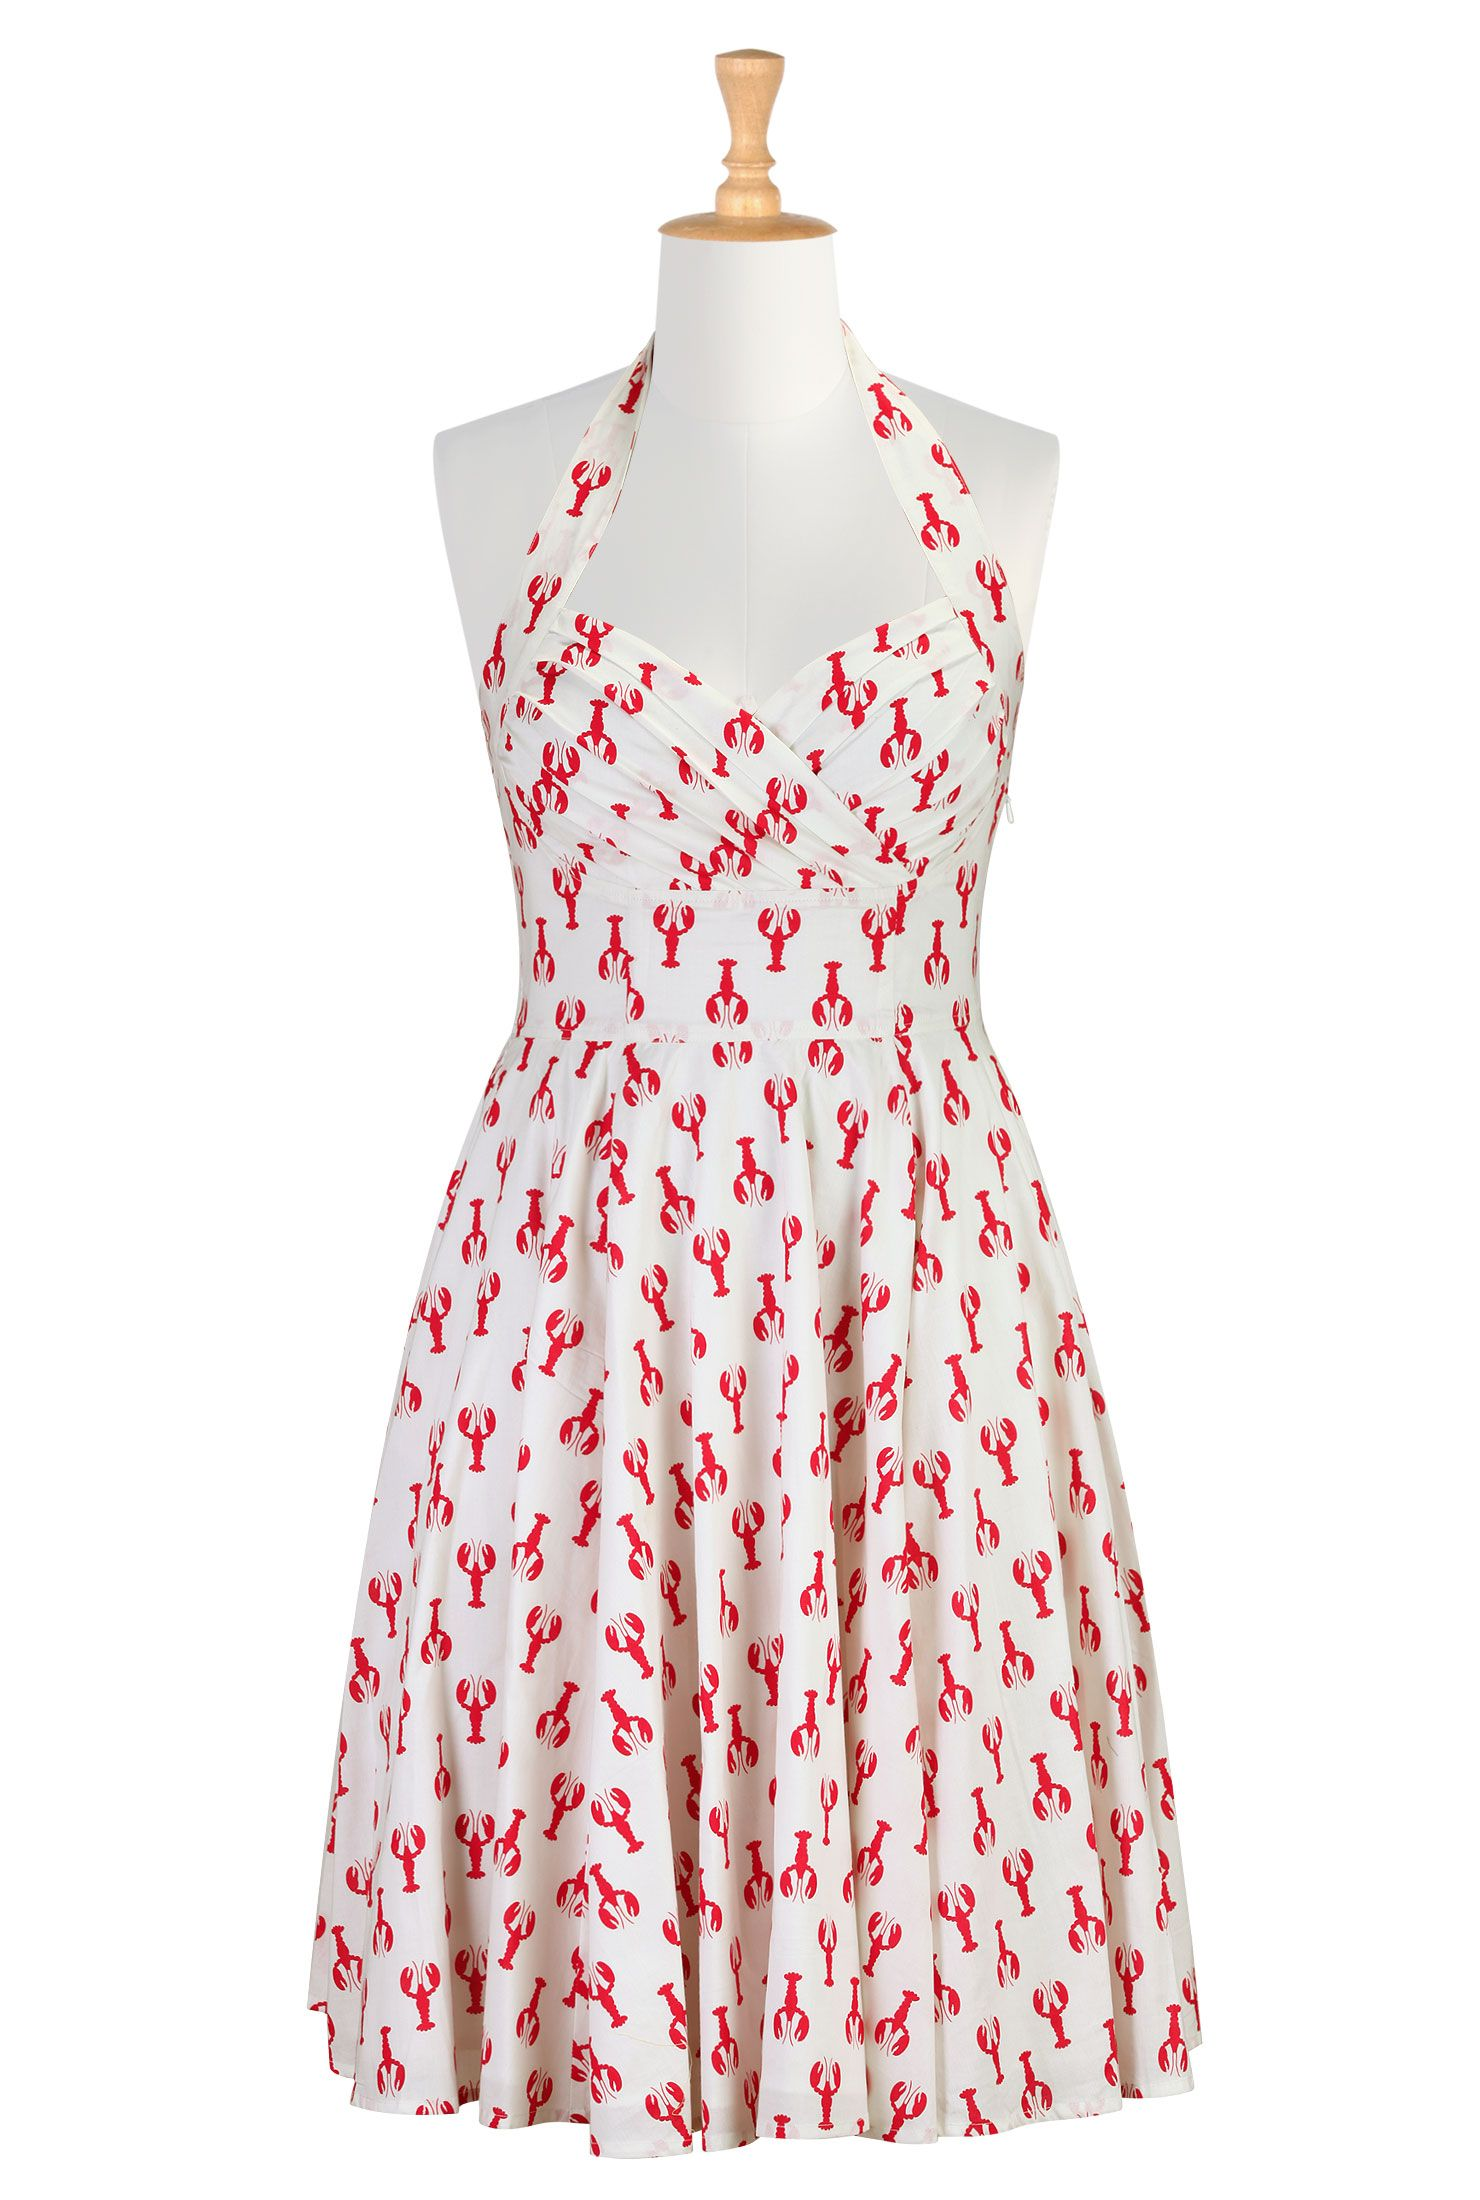 Lobster Print Dresses Fun Cotton Sundresses Shop Womens